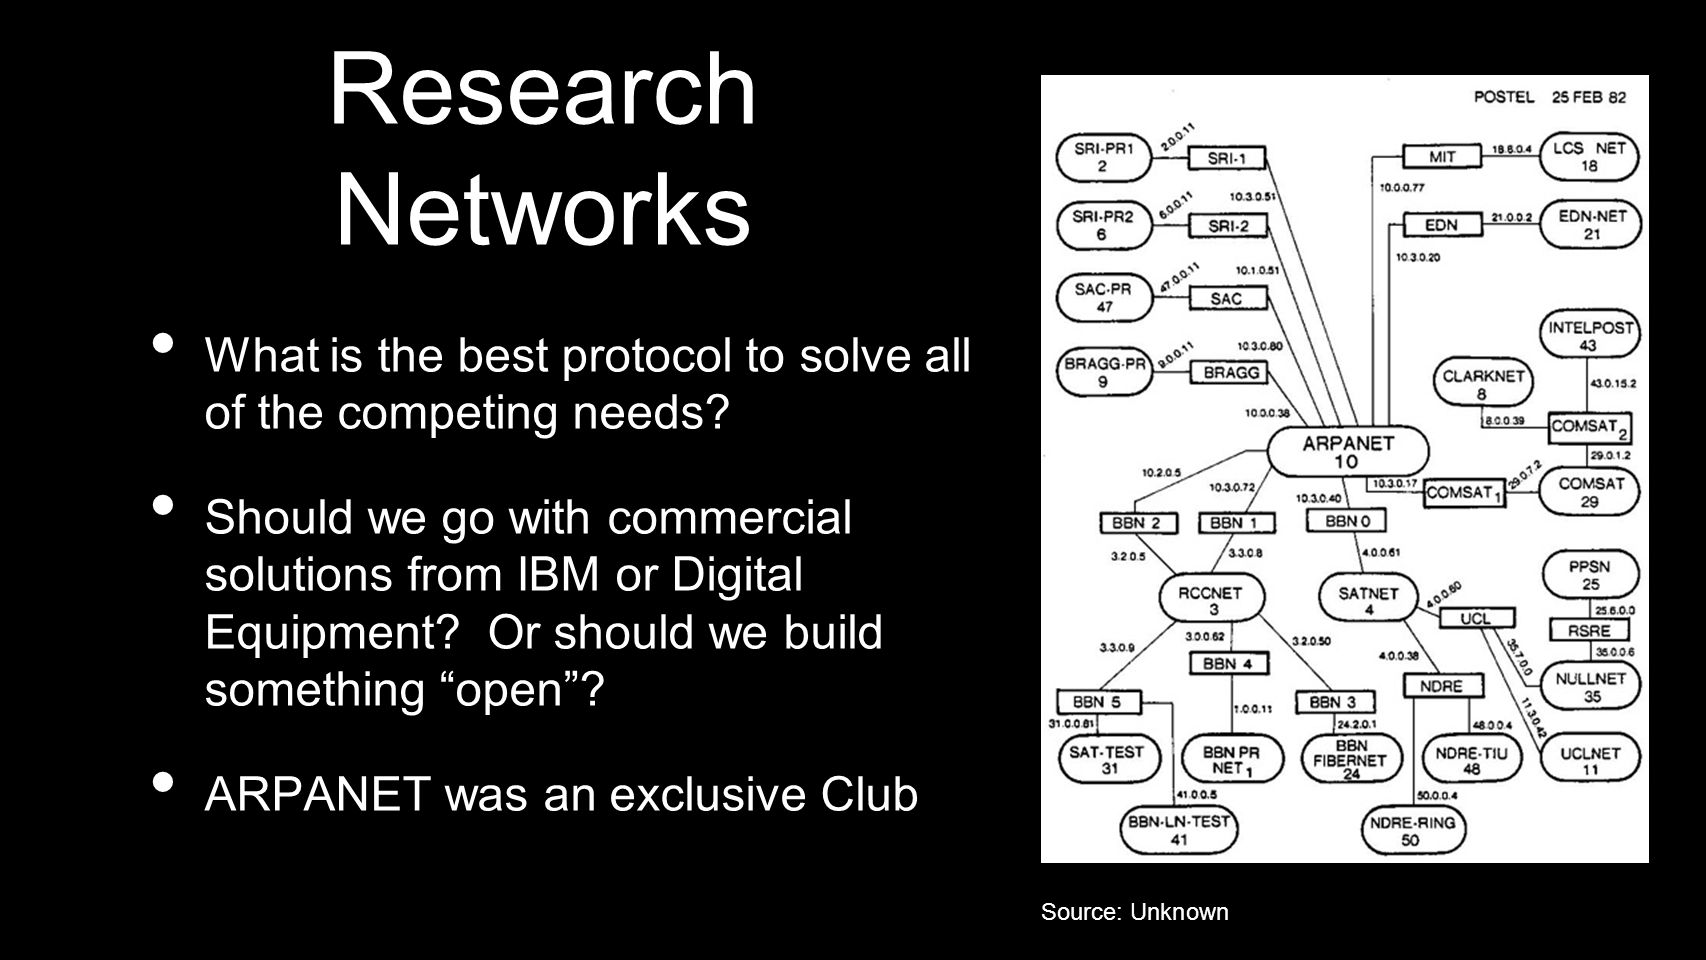 Research Networks What is the best protocol to solve all of the competing needs? Should we go with commercial solutions from IBM or Digital Equipment?